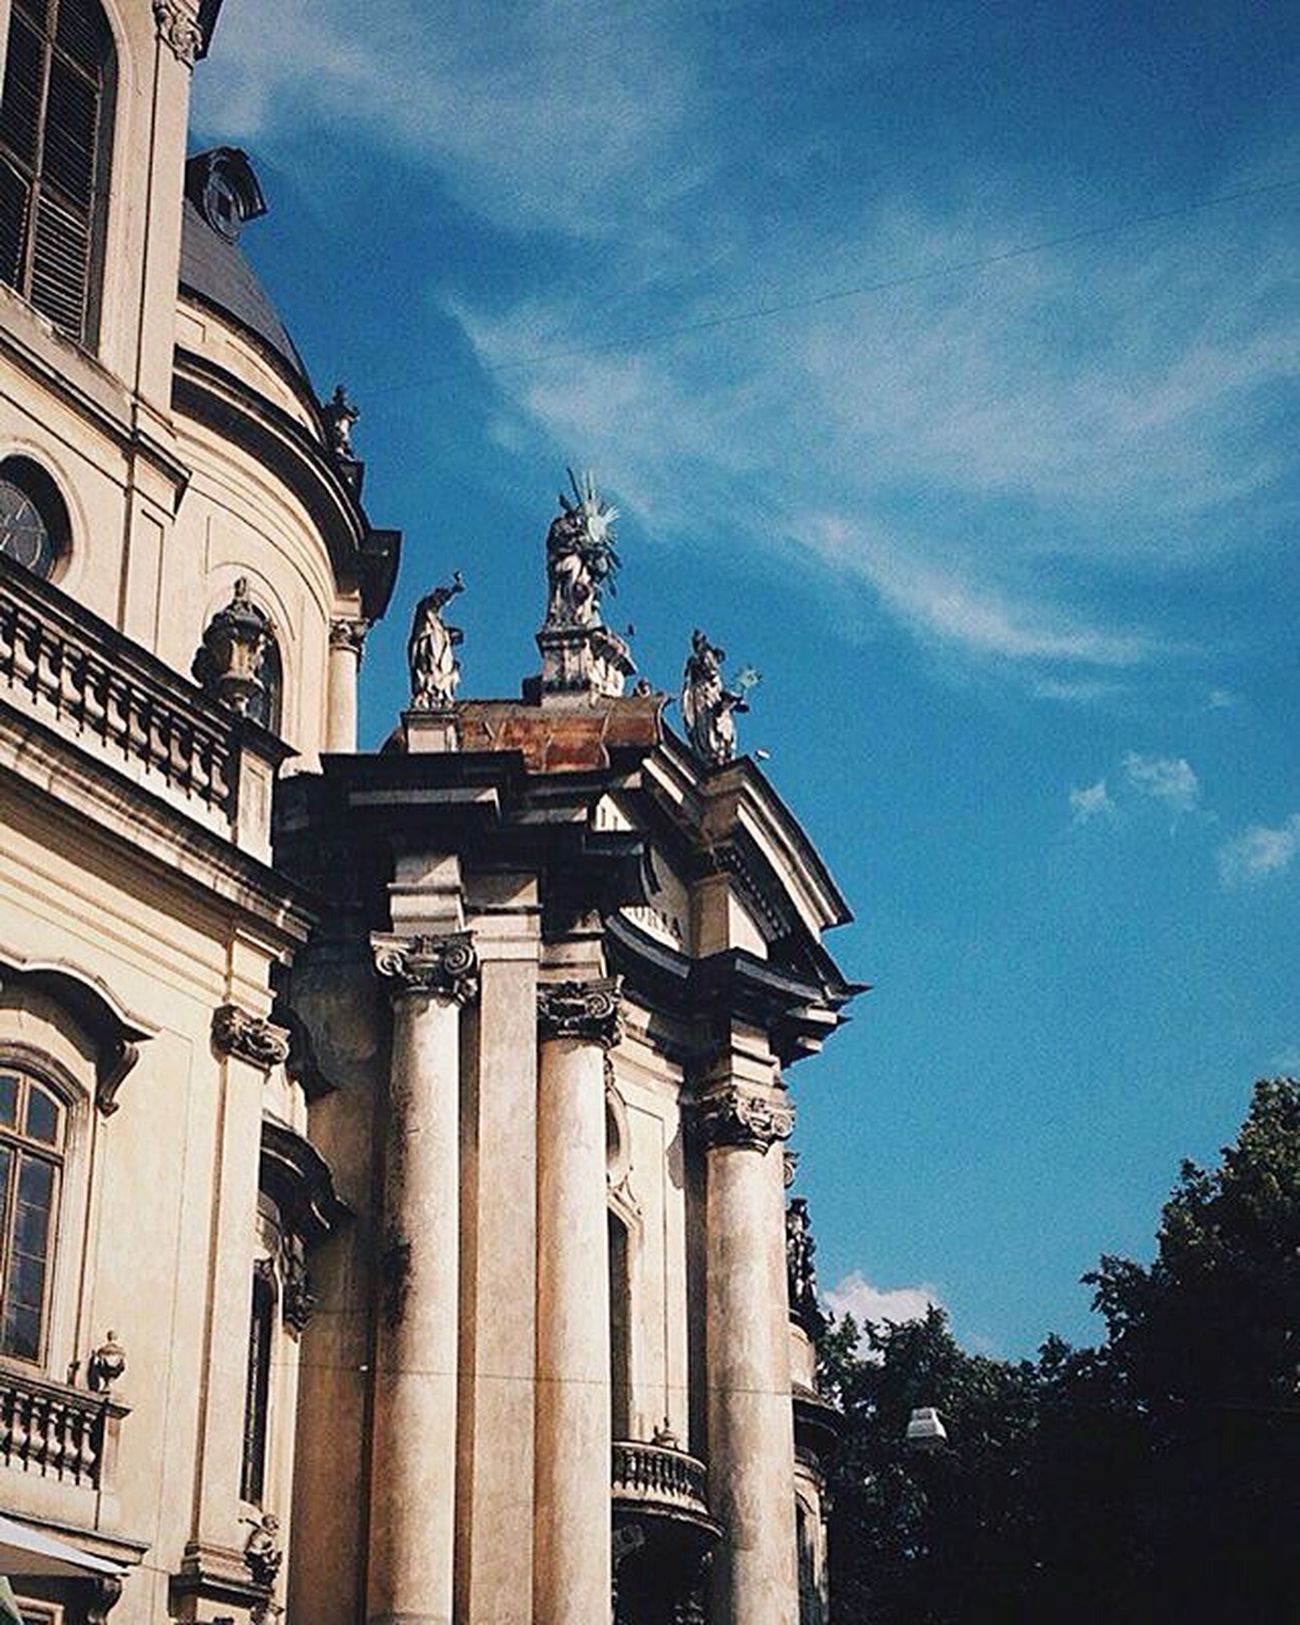 Architecture Built Structure Low Angle View Building Exterior Famous Place History Tourism Architectural Column Day Blue Vscogram Vscogood Vscocam VSCO Outdoors City Architecture Historic Building Old Lvivit Lvivua Lviv1256 Lvivforyou Lviv, Ukraine Lvivgram